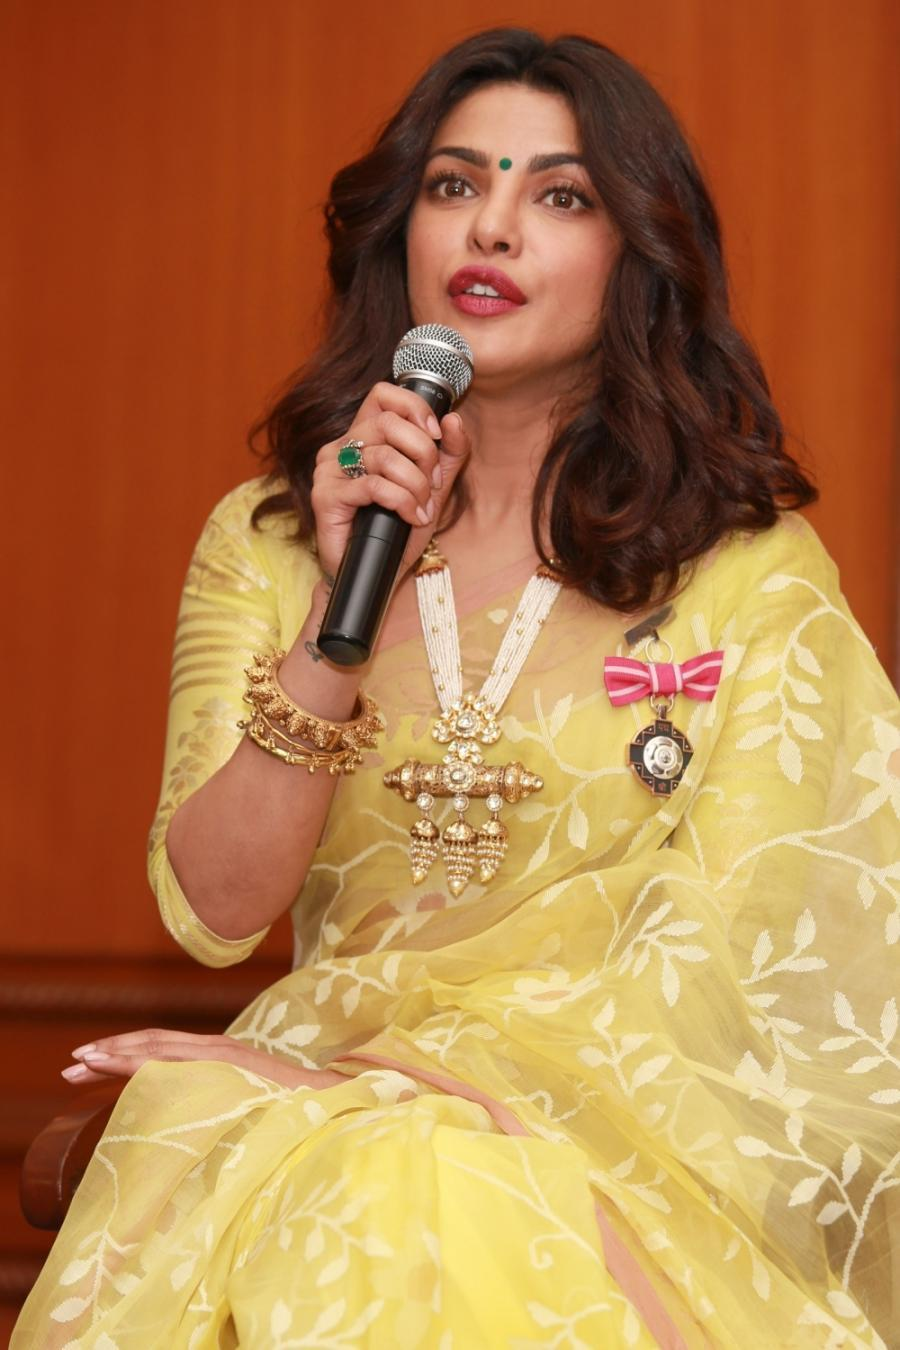 Priyanka Chopra Hot Photos At Awards Function In Yellow Saree